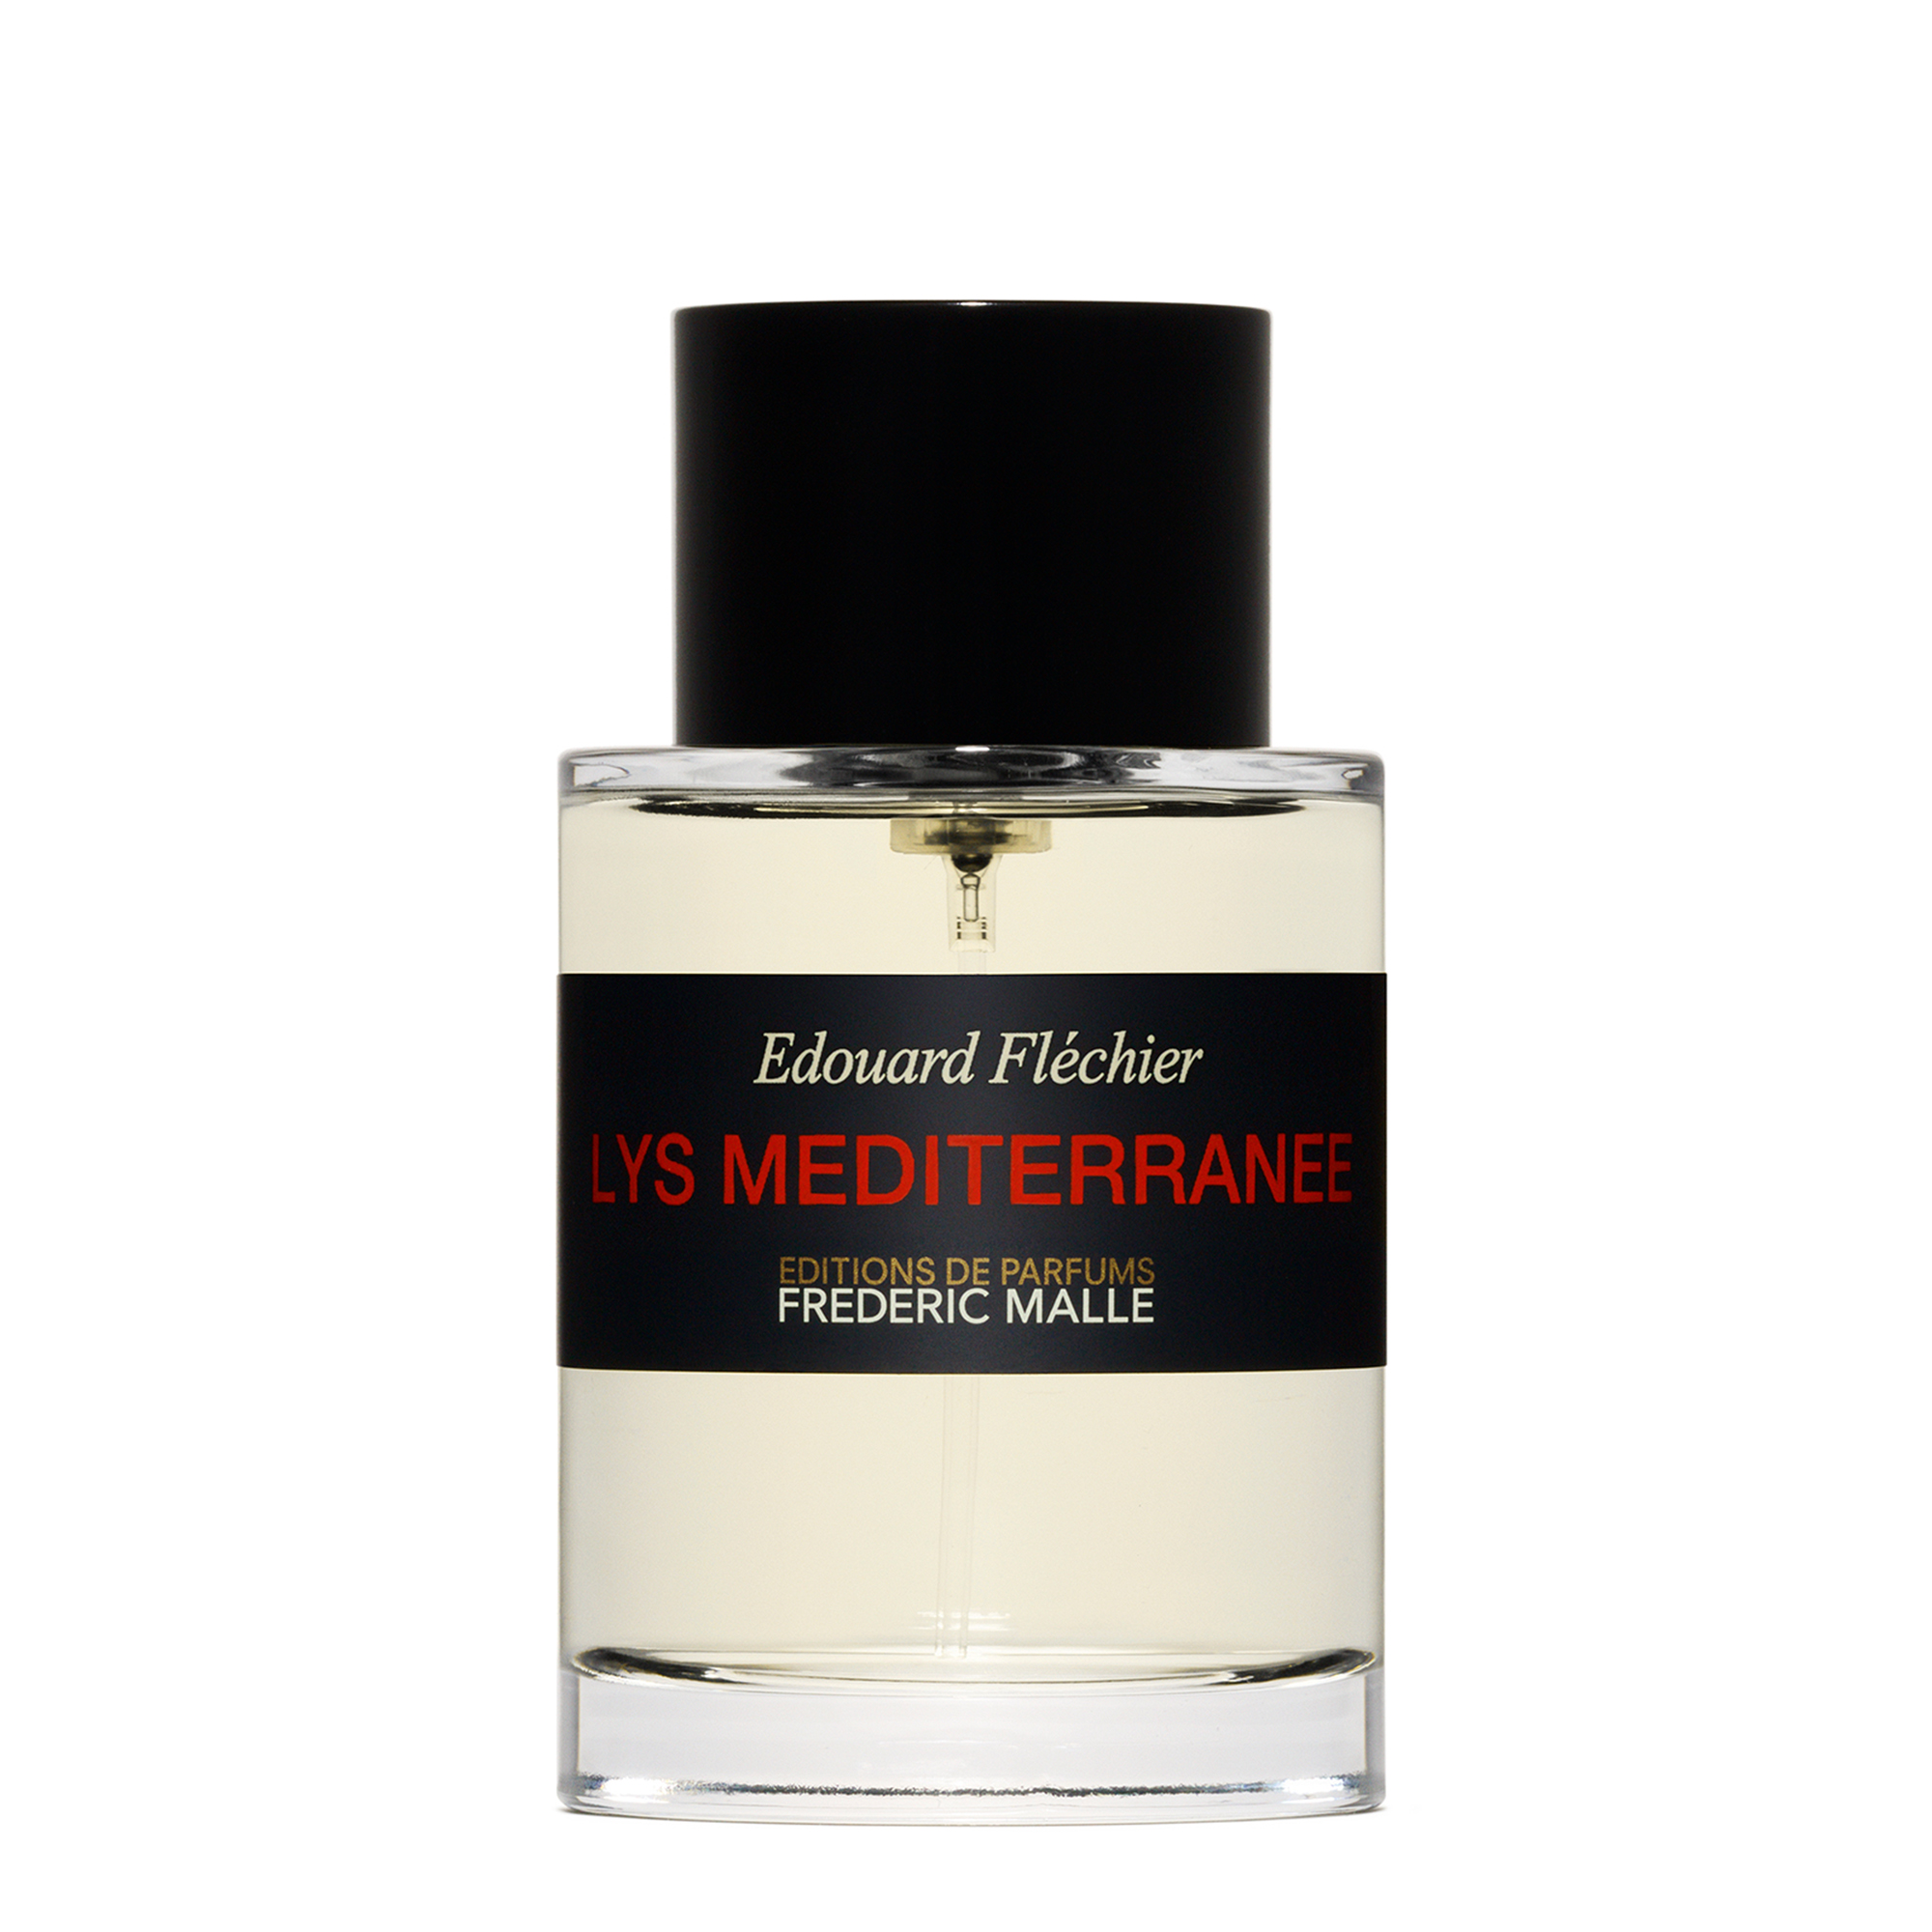 AN ALTERNATIVE WAY TO WEAR OUR PERFUMES